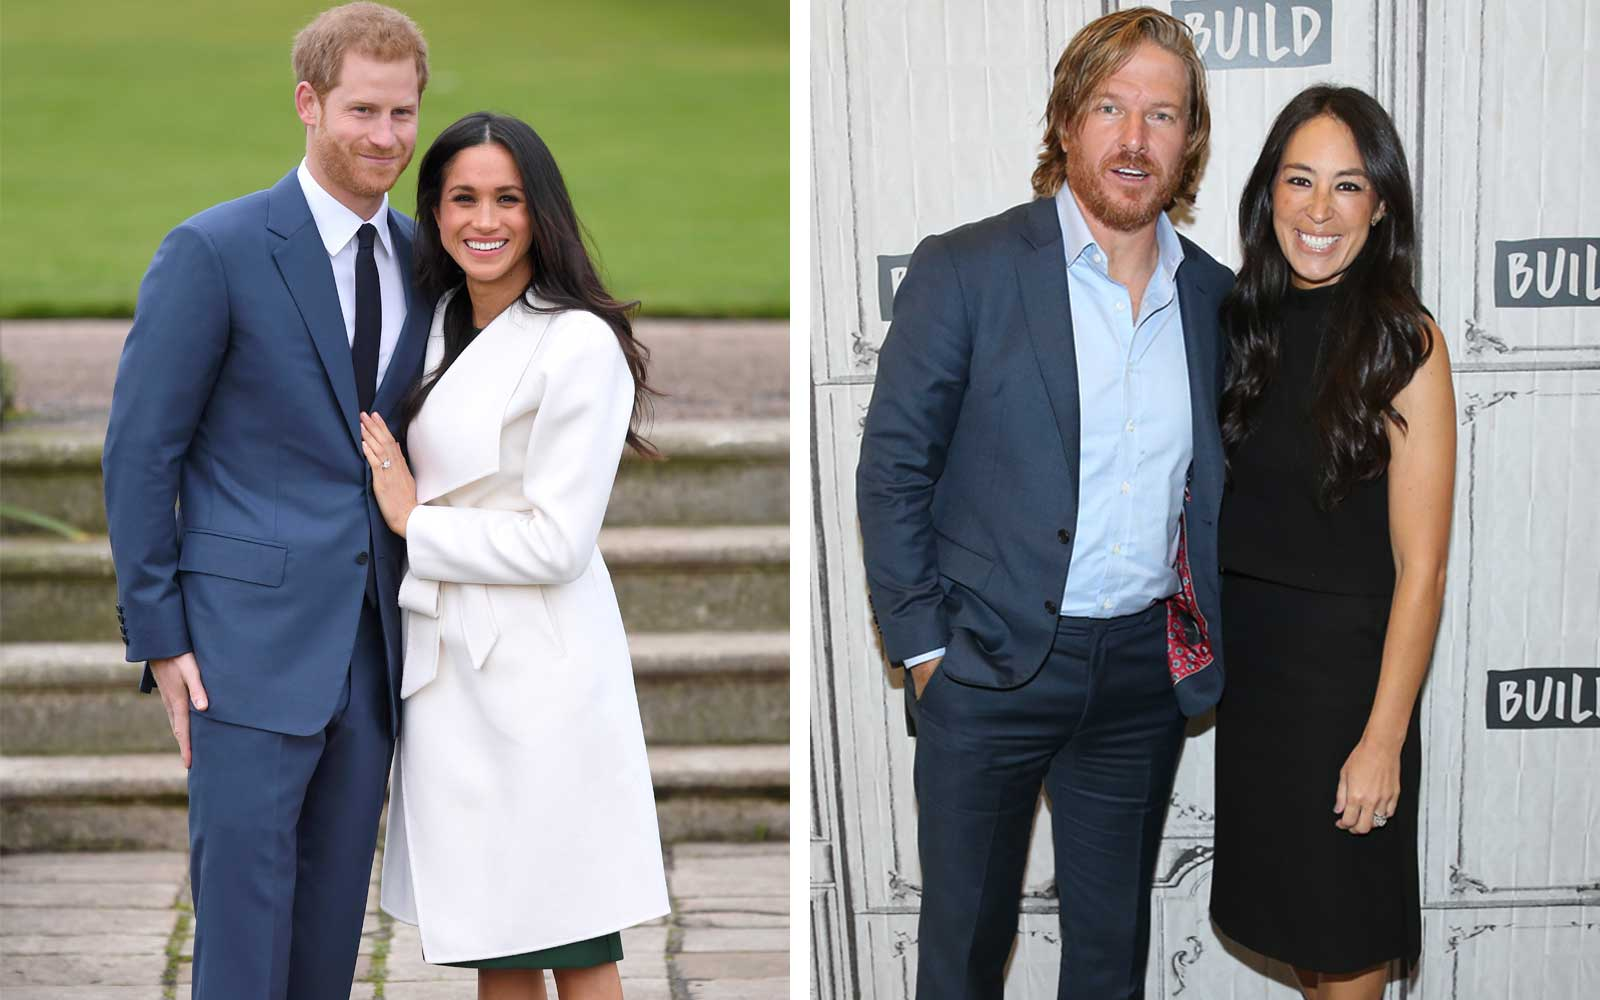 Prince Harry and Meghan Markle; Chip and Joanna Gaines